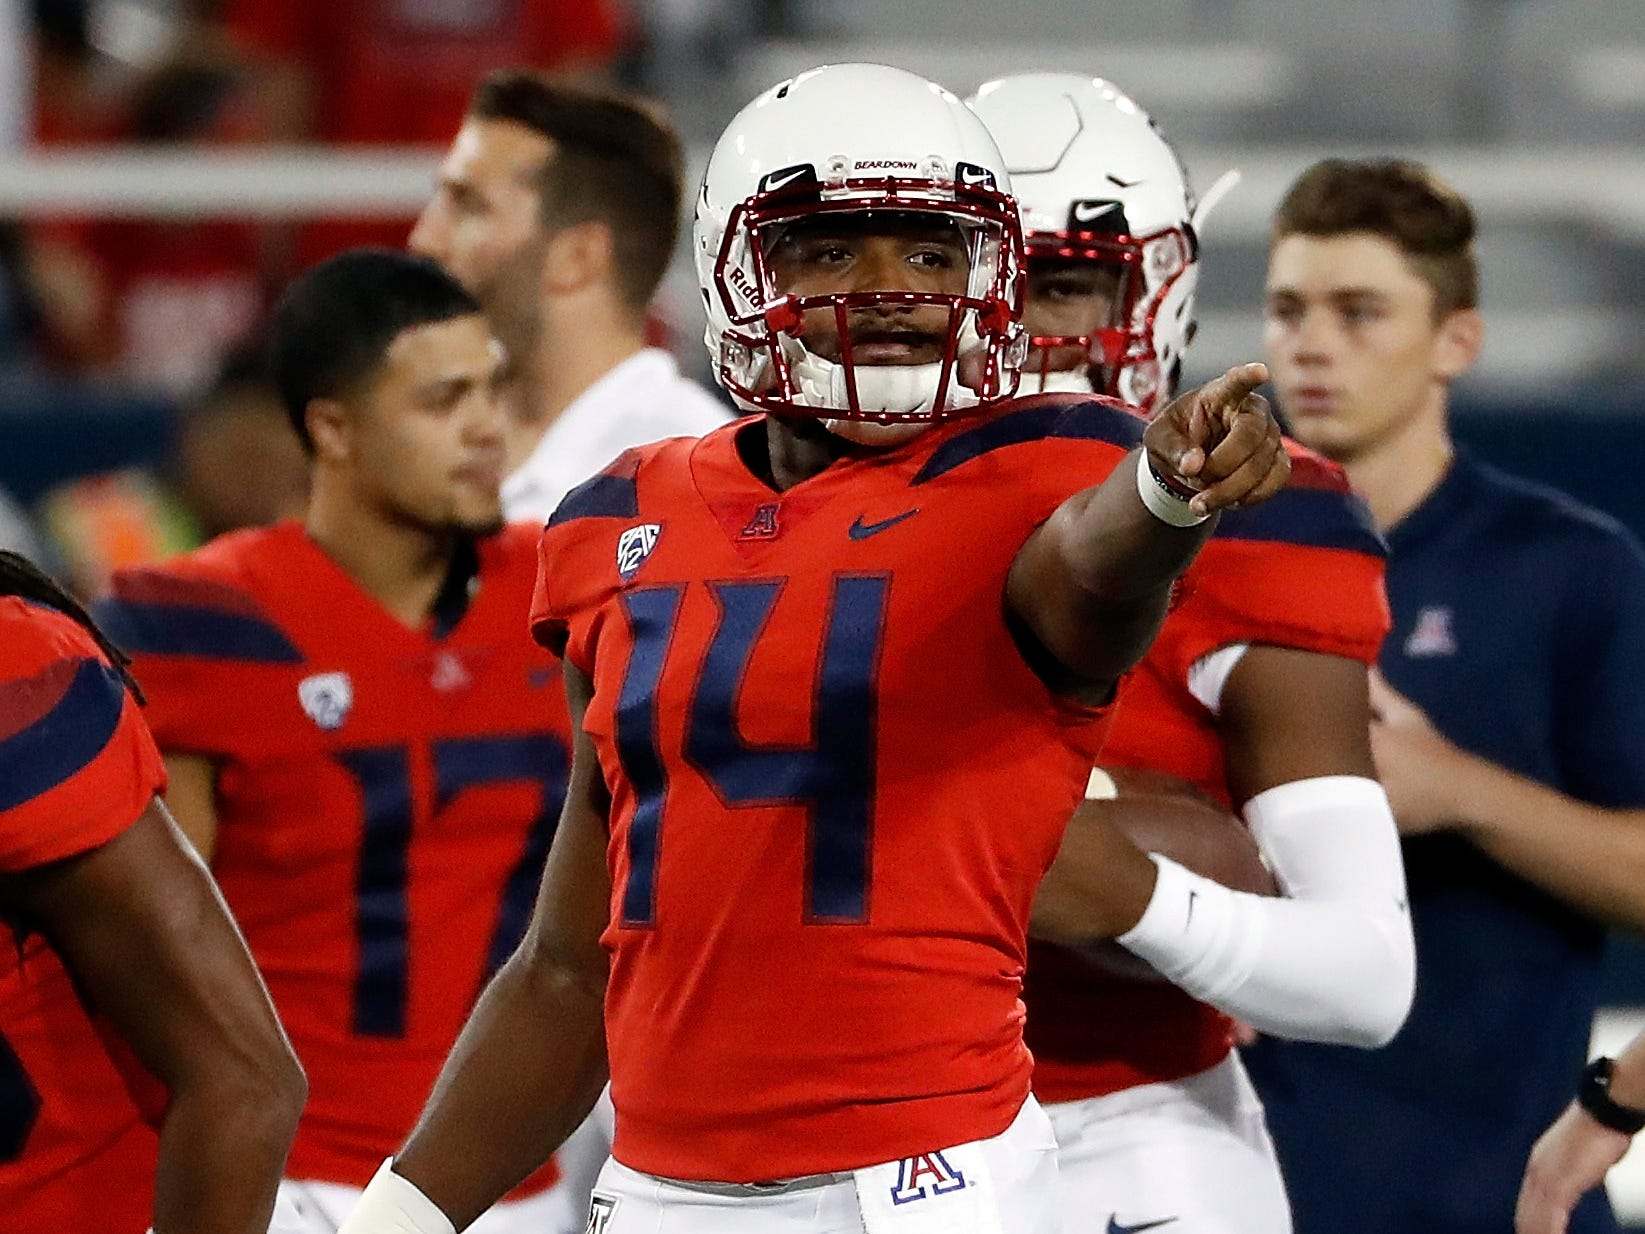 Arizona quarterback Khalil Tate (14) and teammates warm up for the team's NCAA college football game against California on Saturday, Oct. 6, 2018, in Tucson, Ariz. (AP Photo/Chris Coduto)